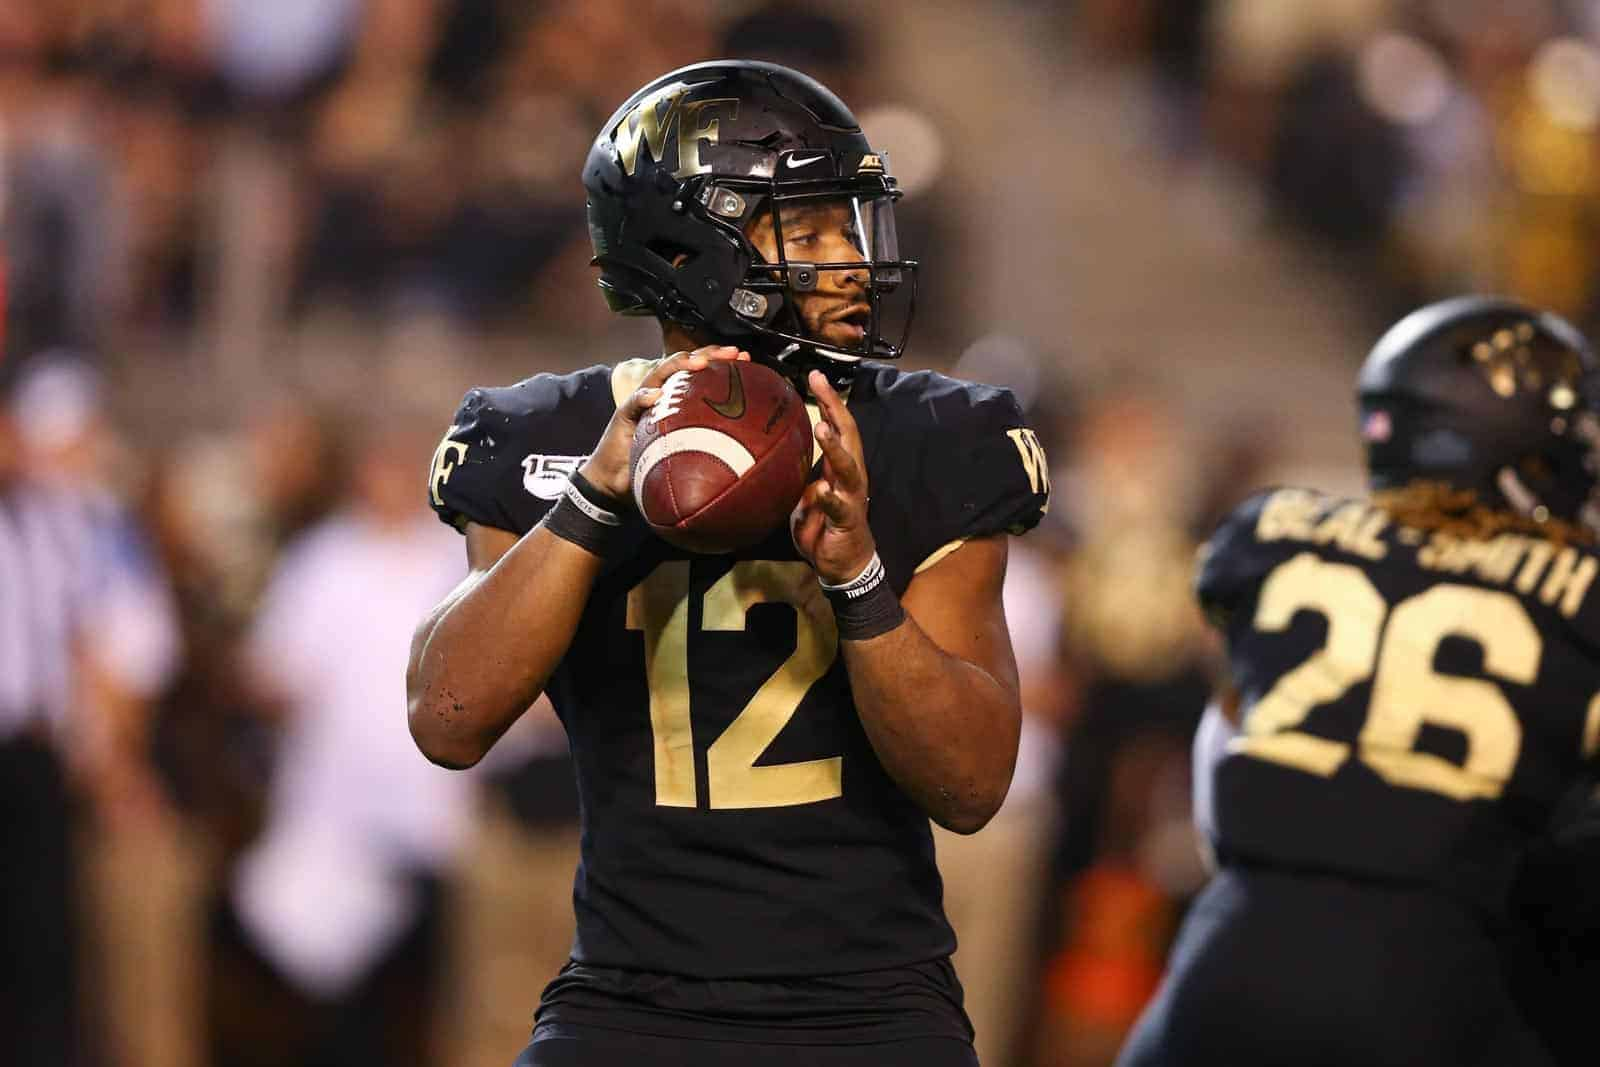 2021 NFL Draft: Three long-term quarterback options for the Panthers